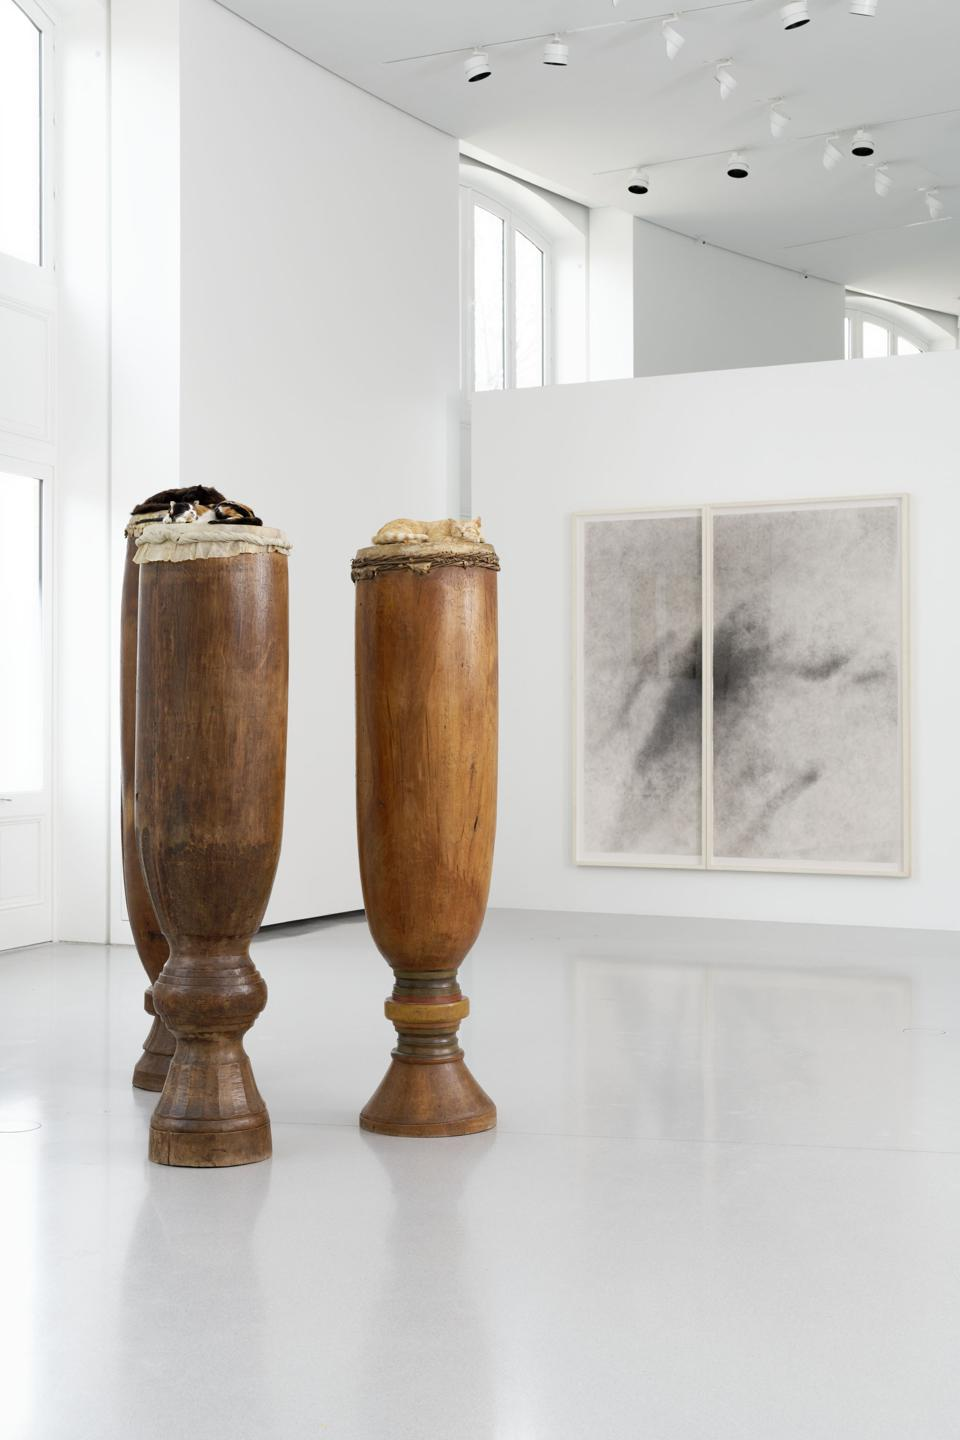 David Hammons, High Level of Cats, 1998, 3 drums, 3 taxidermed cats, and Basketball Drawing, 2008, charcoal on paper